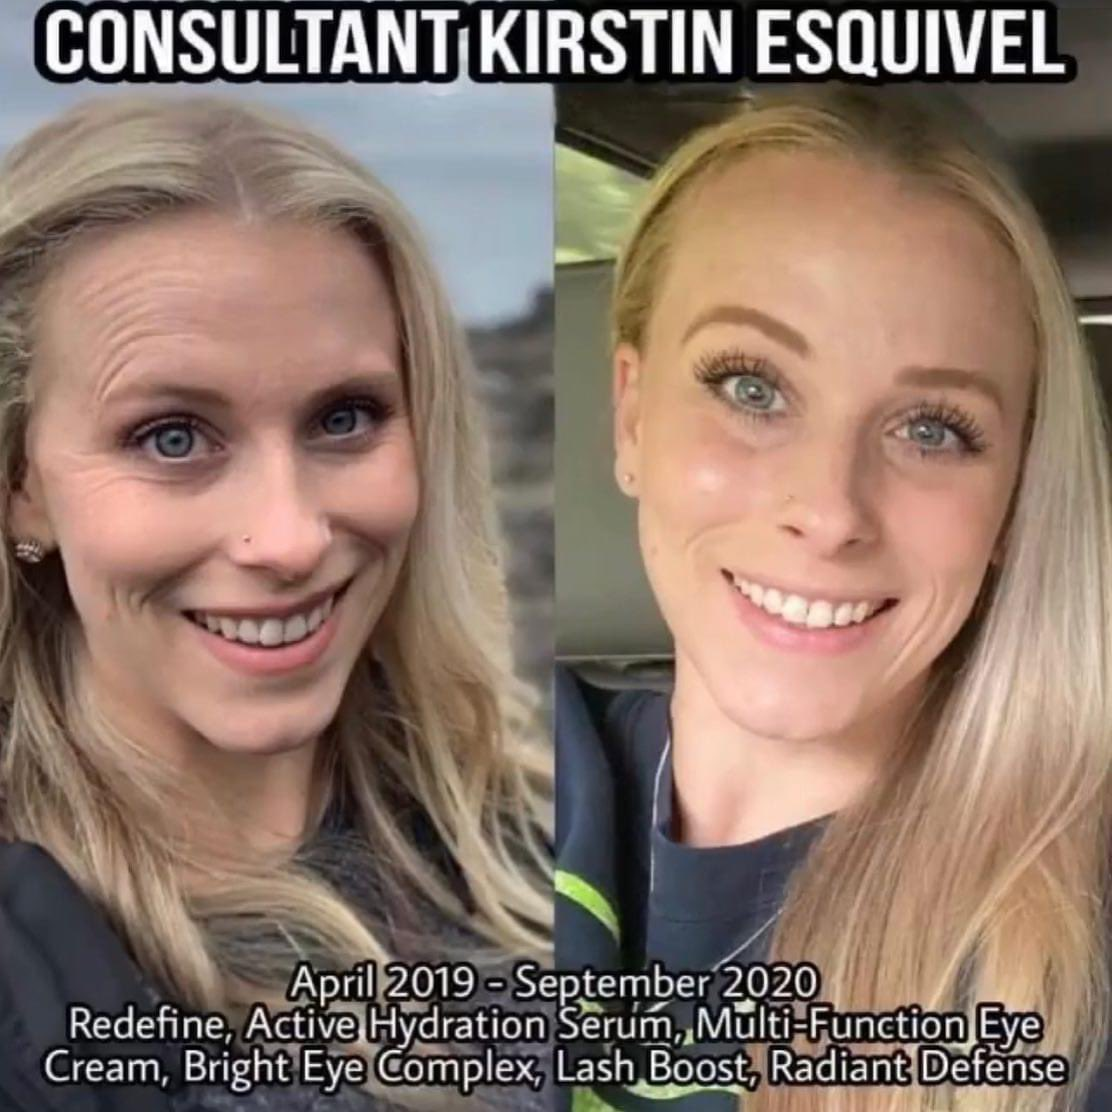 🌟Seriously...This is one of the reasons why I use and sell Rodan & Fields 🌟 look at the transformation Kirstin has gone through with her skin  looks Firmer,brighter, hydrated 💦and healthier 🙌🏻 I am here to help, no pressure 🥰 #feelbetter #lookbetter  #healthyskin #firmerskin https://t.co/d4r7RksRKQ